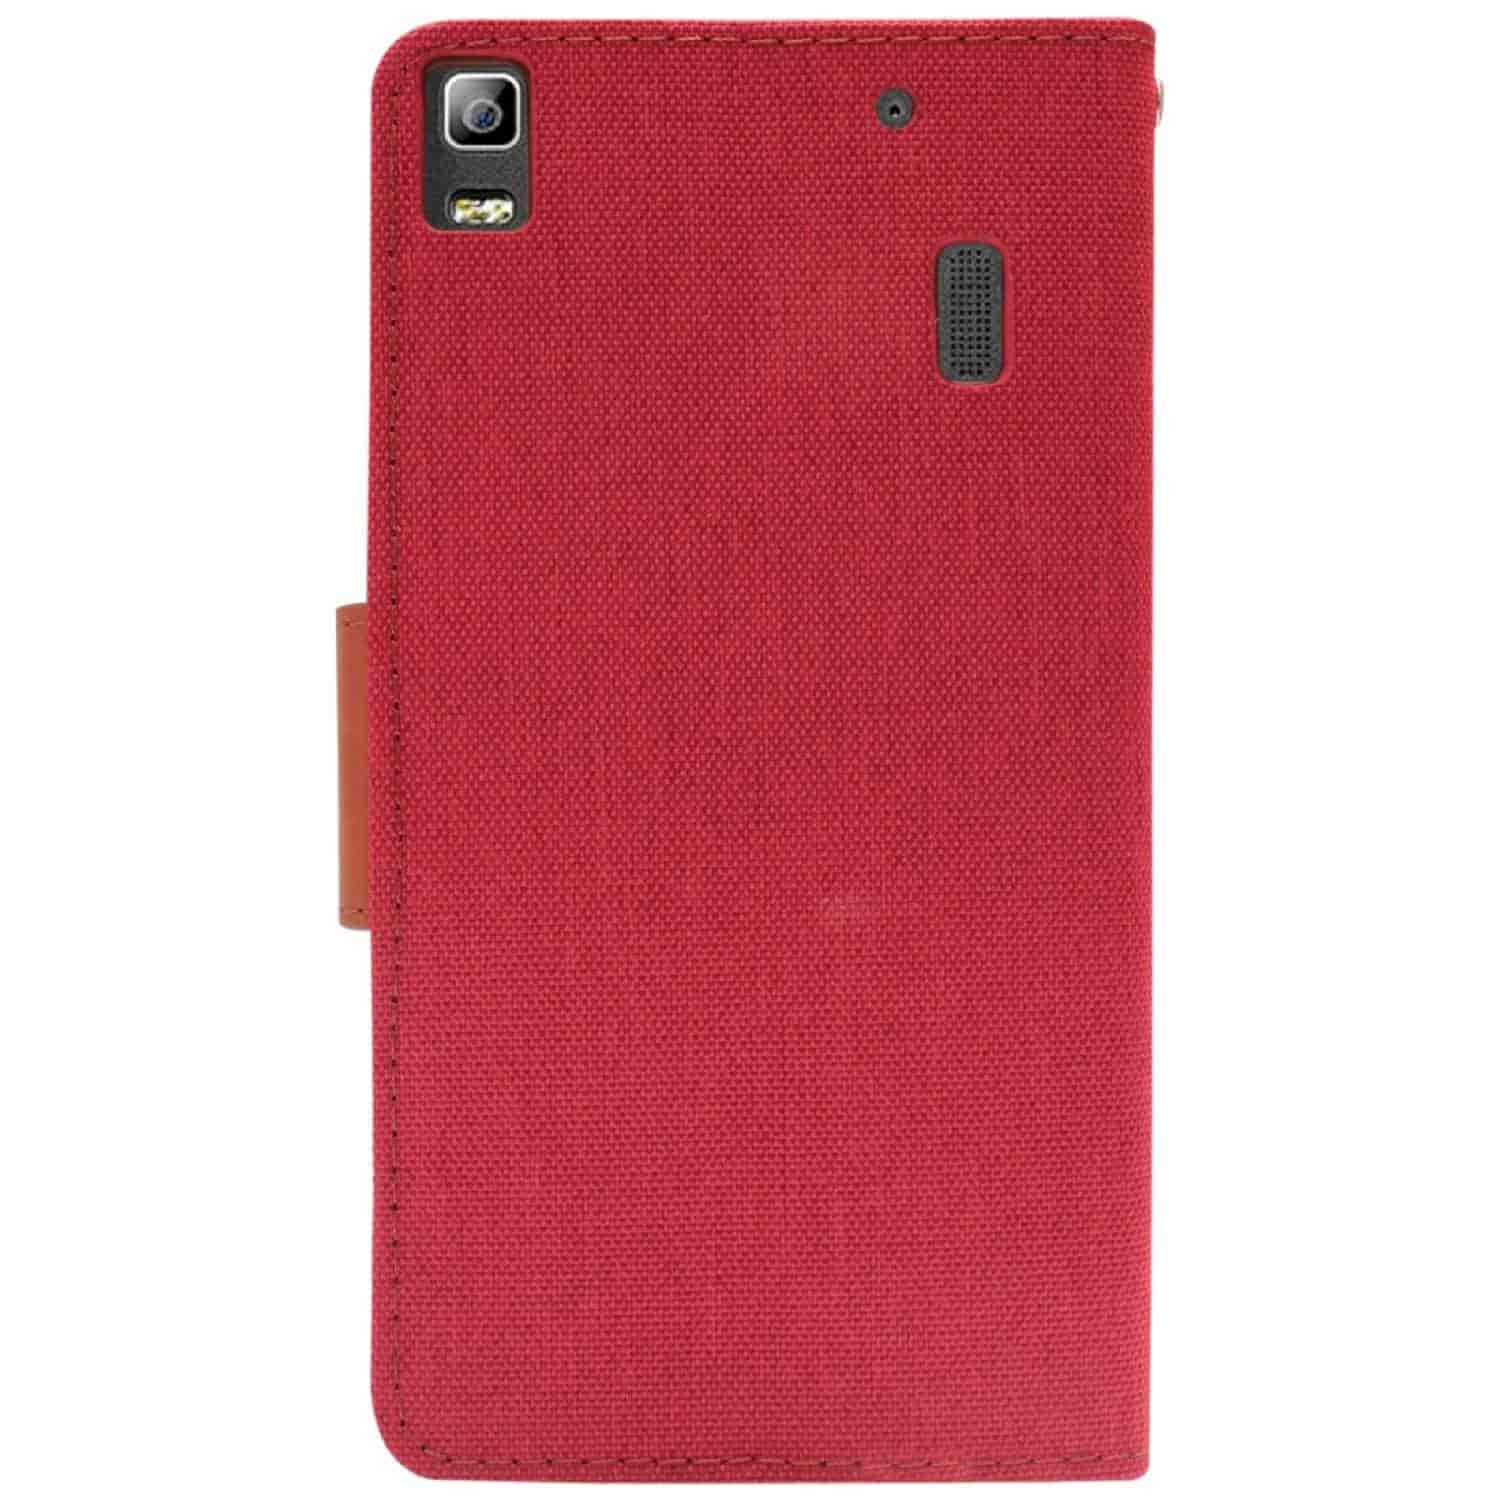 Buy Dmg Mercury Goospery Canvas Diary Wallet Folio Book Cover For Xiaomi Note 2 Case Red Lenovo K3